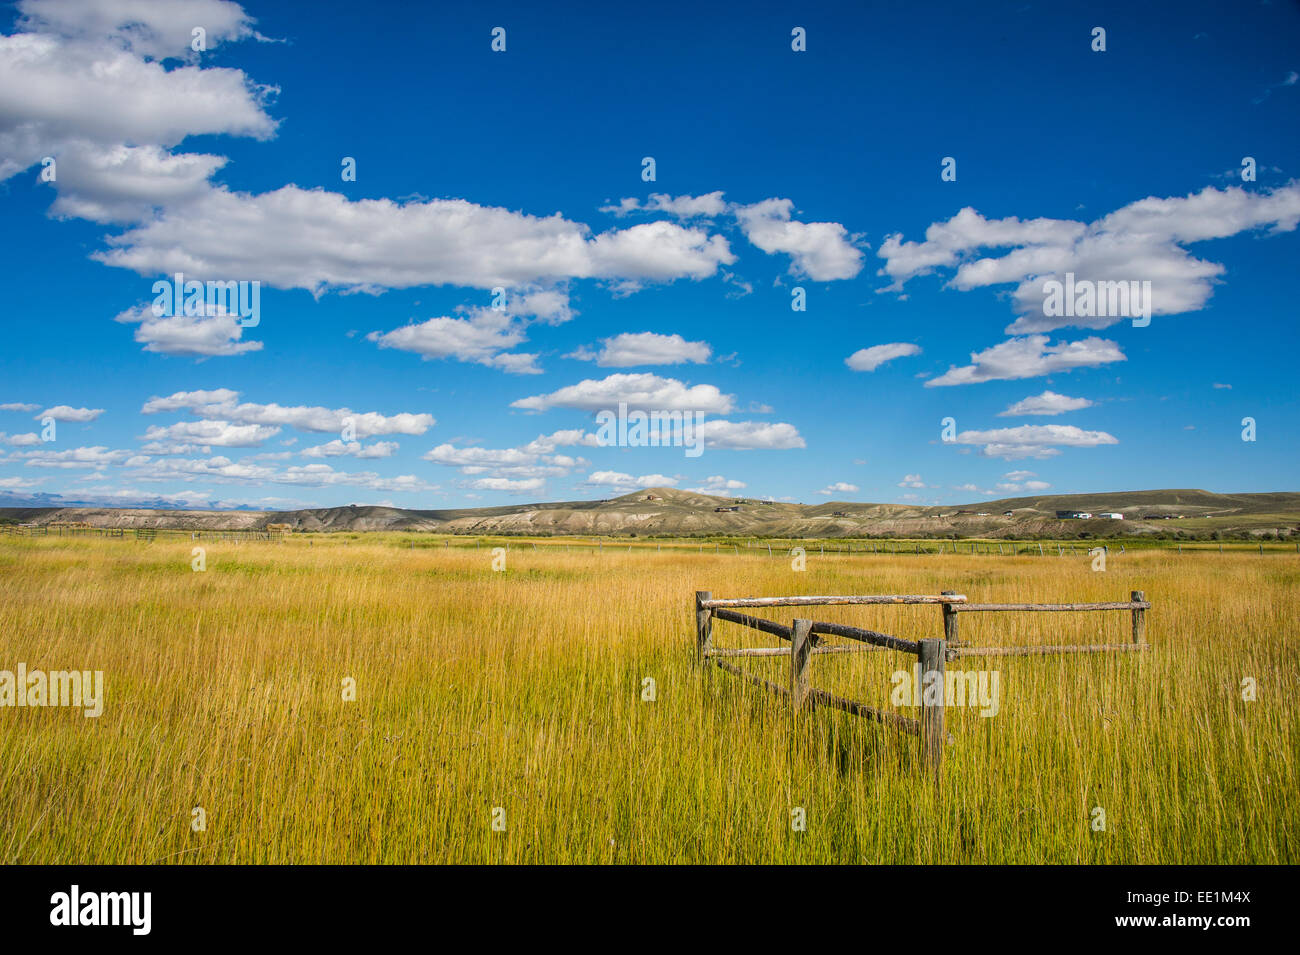 Low lying clouds in southern Wyoming, United States of America, North America - Stock Image